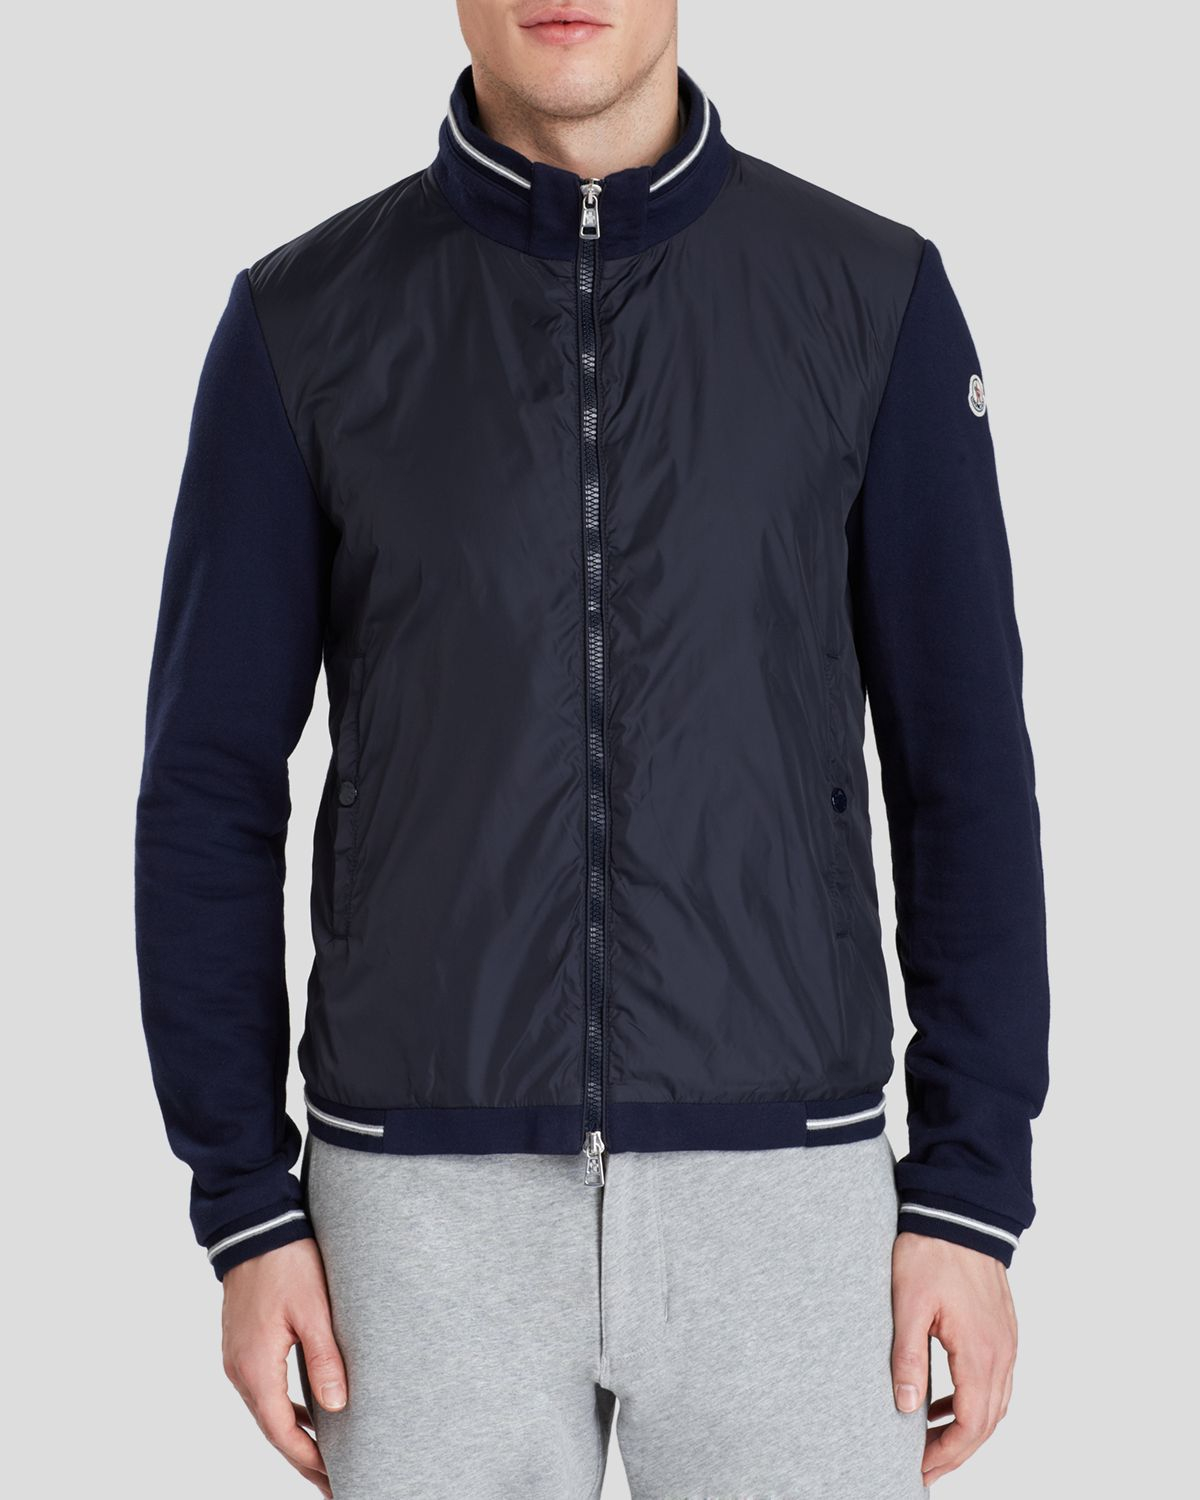 cc6fa88b73a9 Lyst - Moncler Maglia Cardigan in Blue for Men